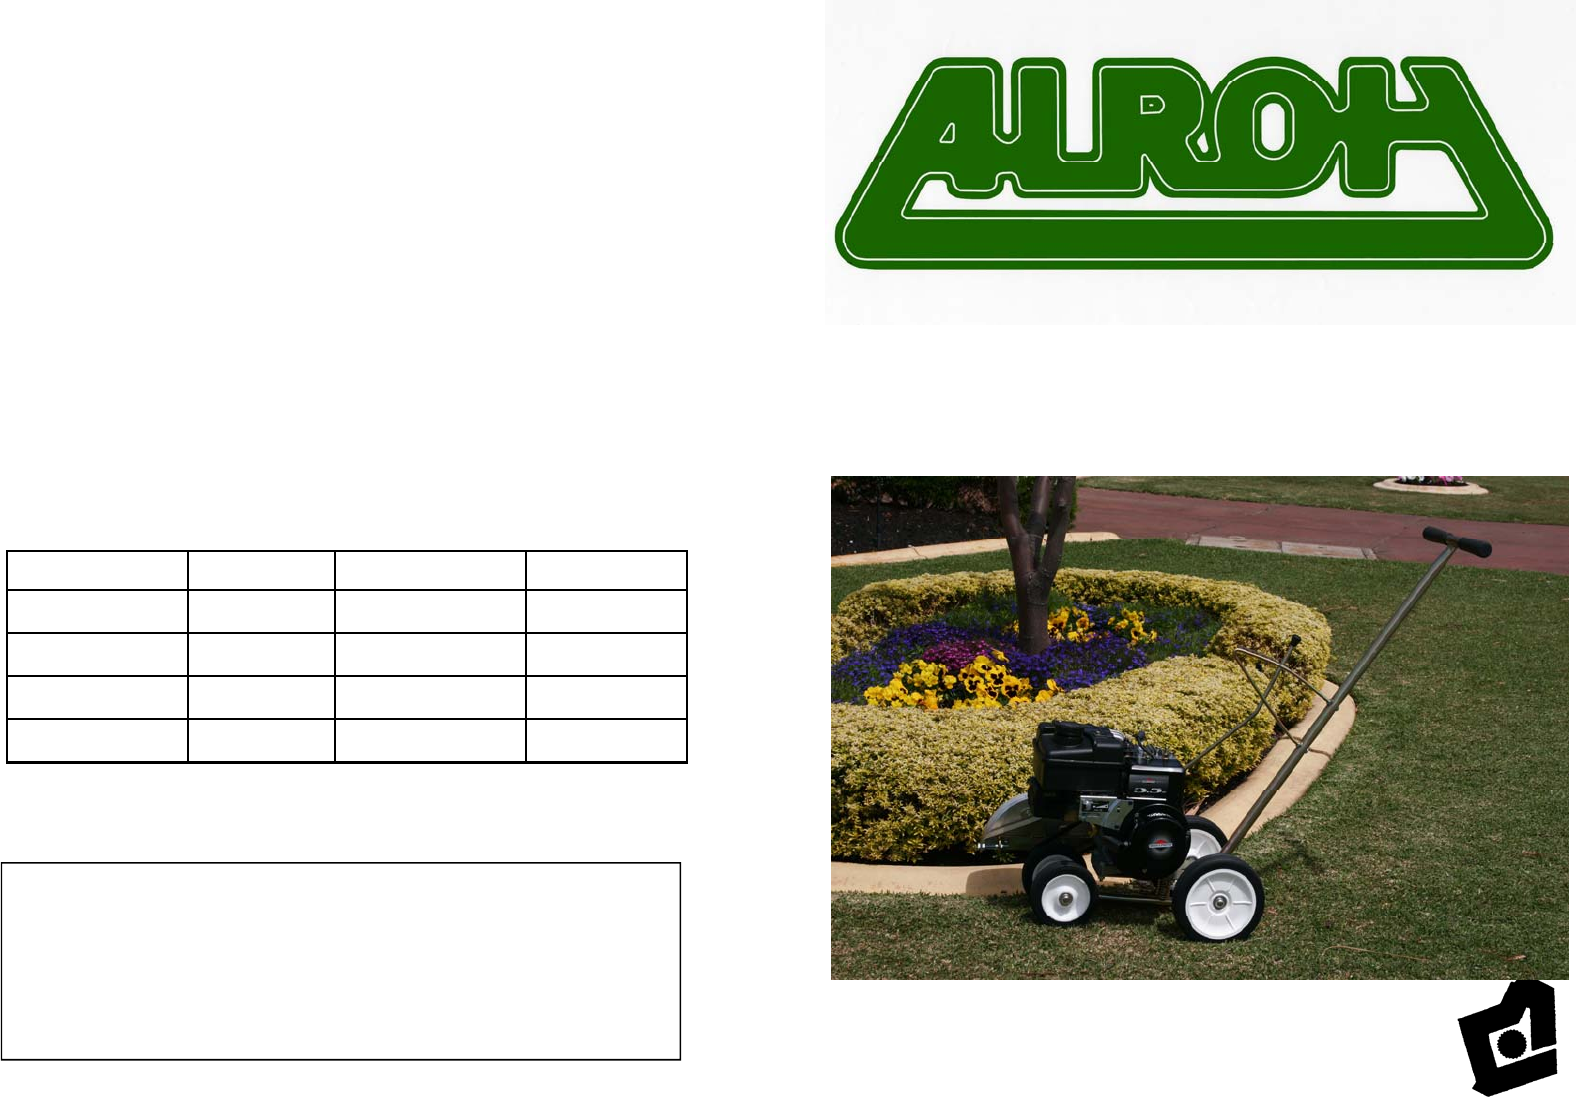 m e y equipment edger alroh edger user guide manualsonline com rh homeappliance manualsonline com Manual Lawn Core Aerator Manual Lawn Aerator Tool